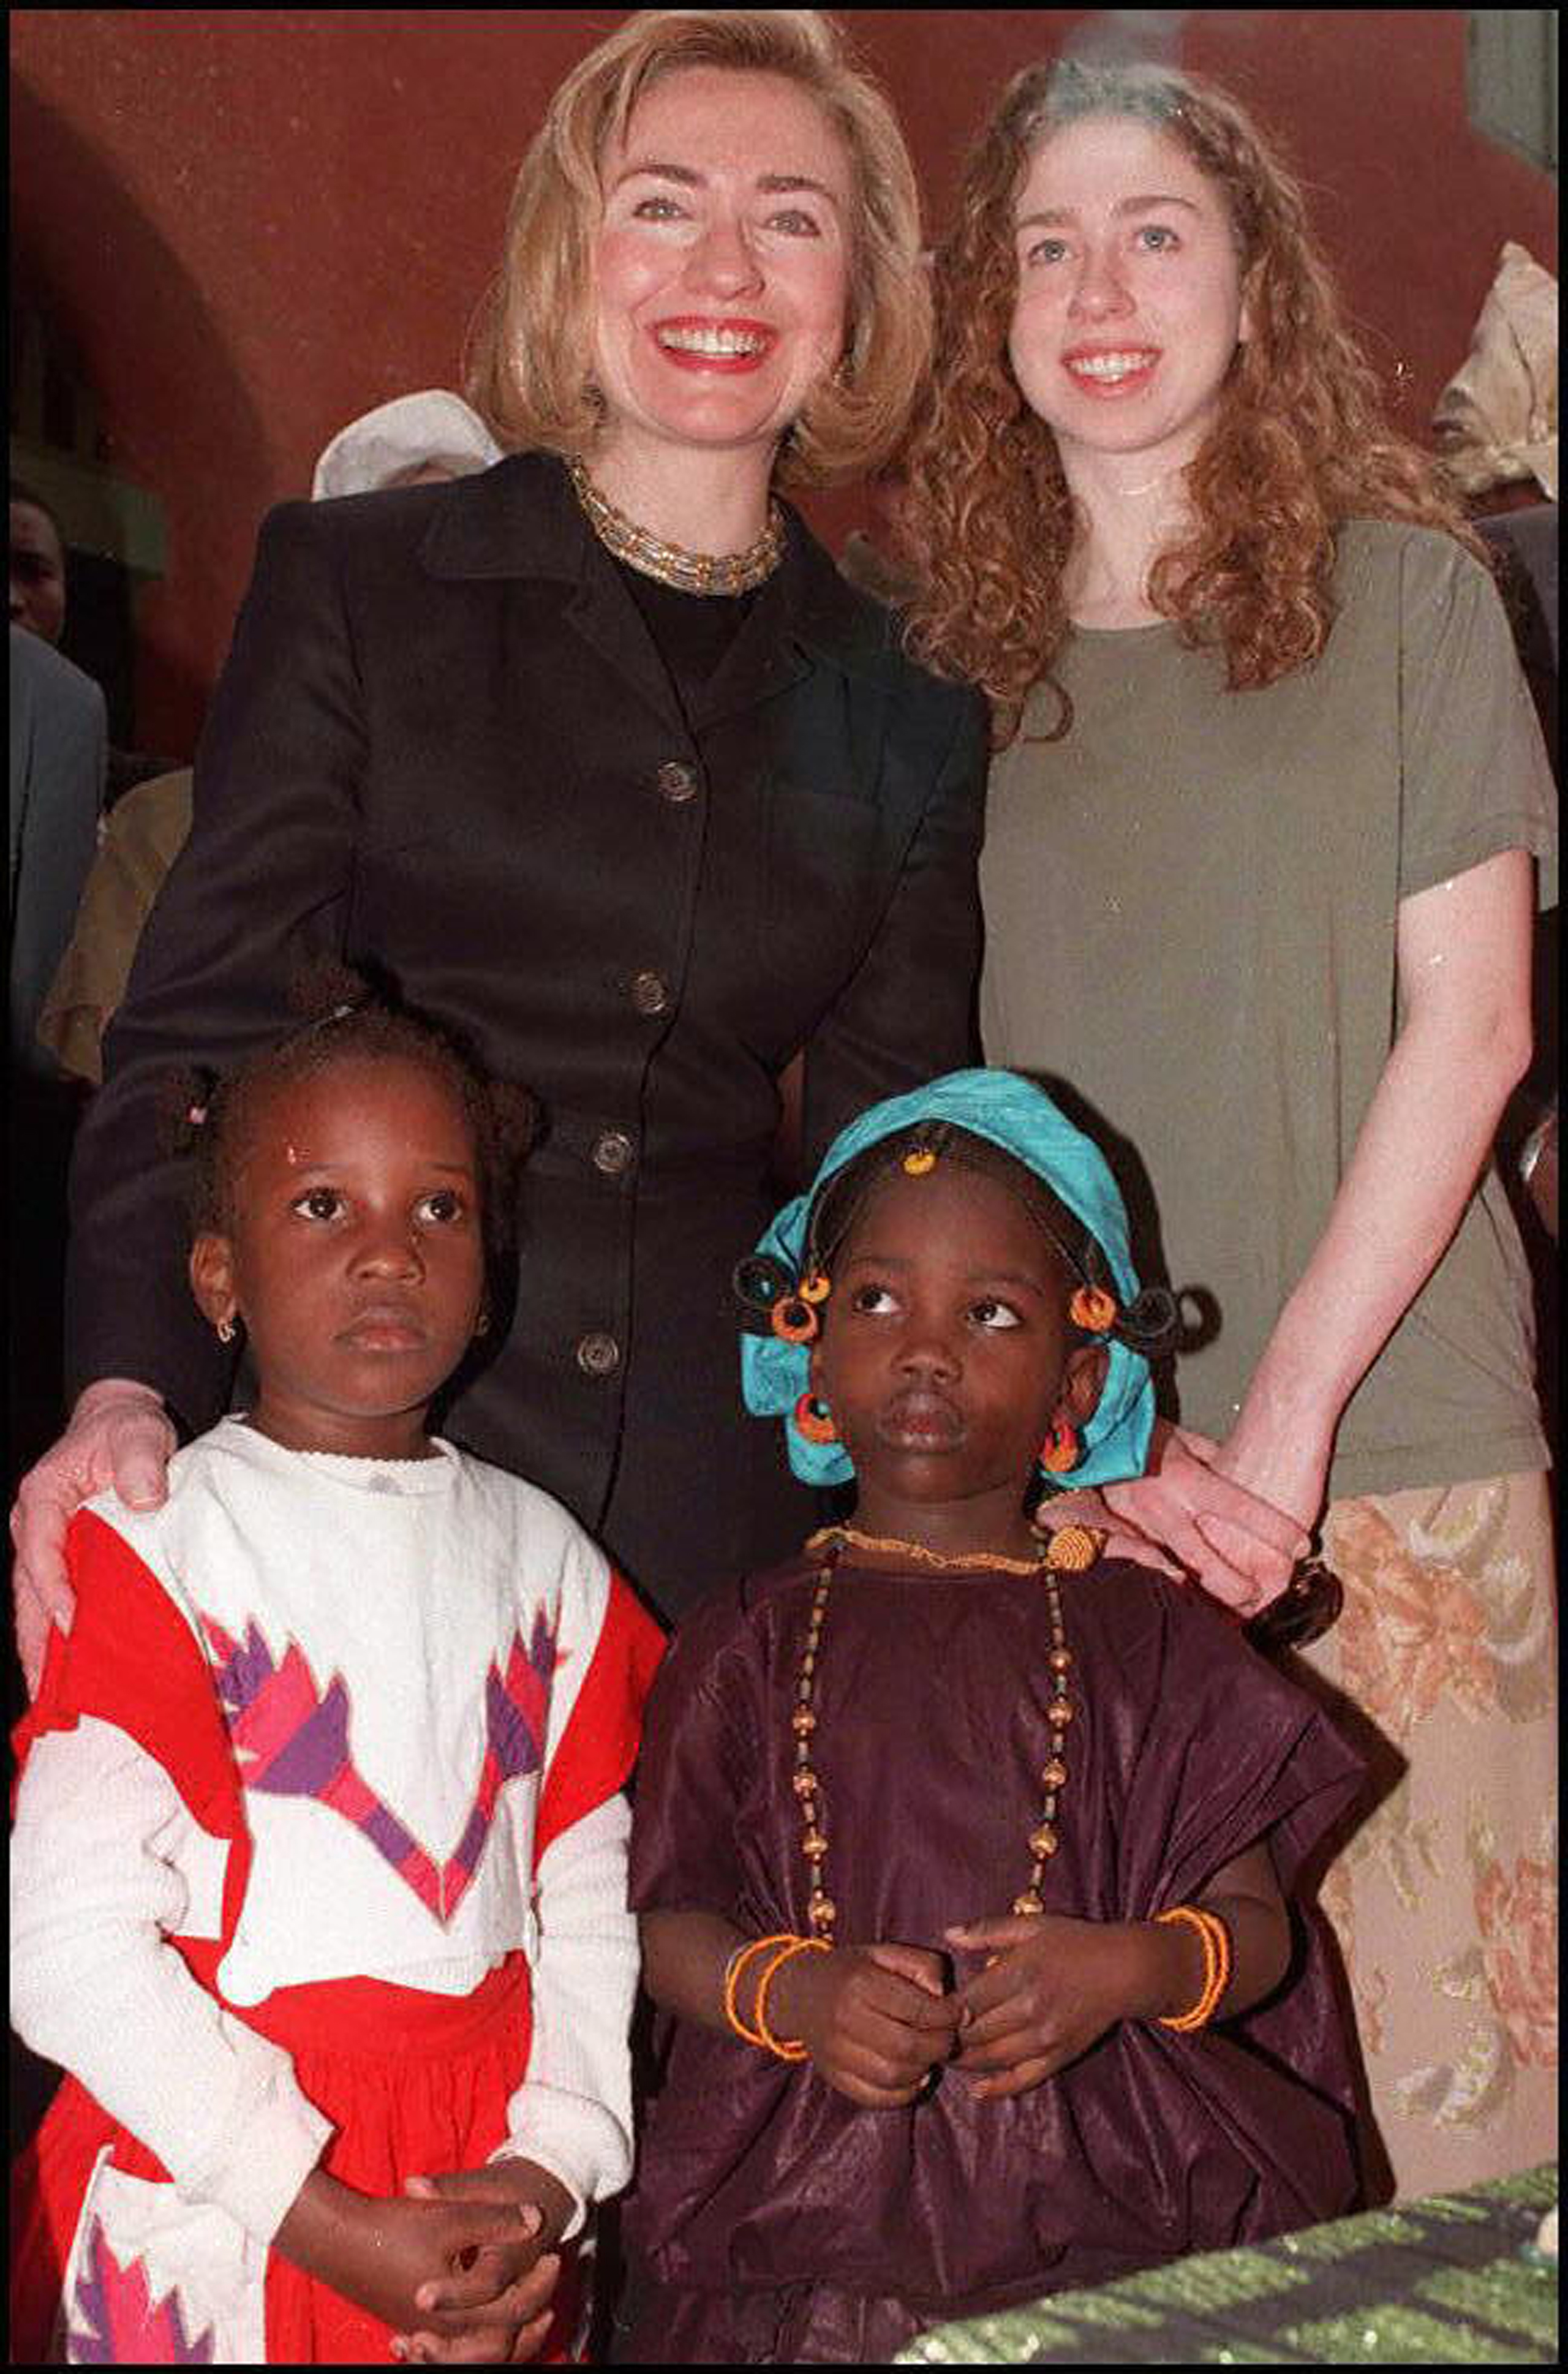 Hillary Clinton and her daughter Chelsea pose with two Senegalese girls in traditional costume at the Slaves House on Goree Island off Dakar on March 17, 1997.